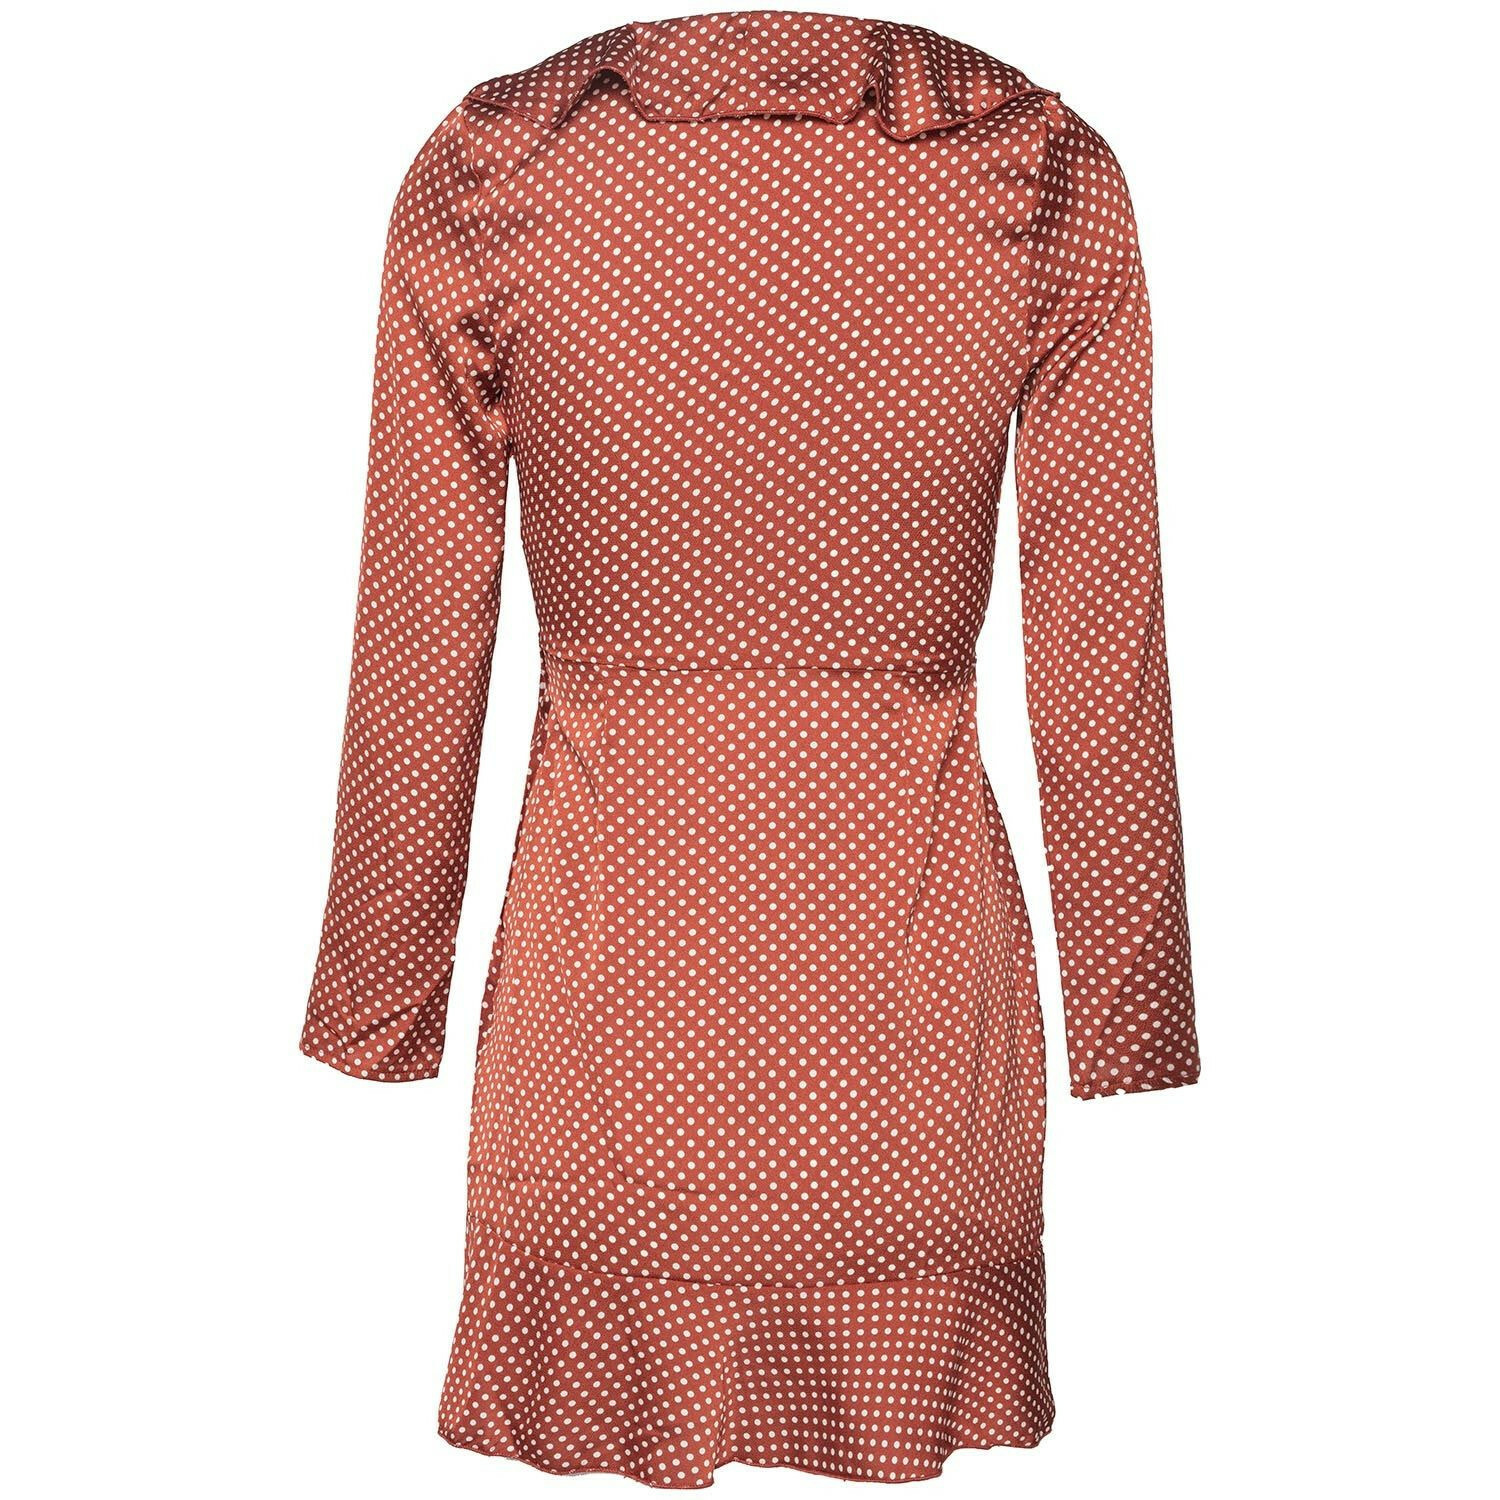 GLAM COPPER WRAP DRESS